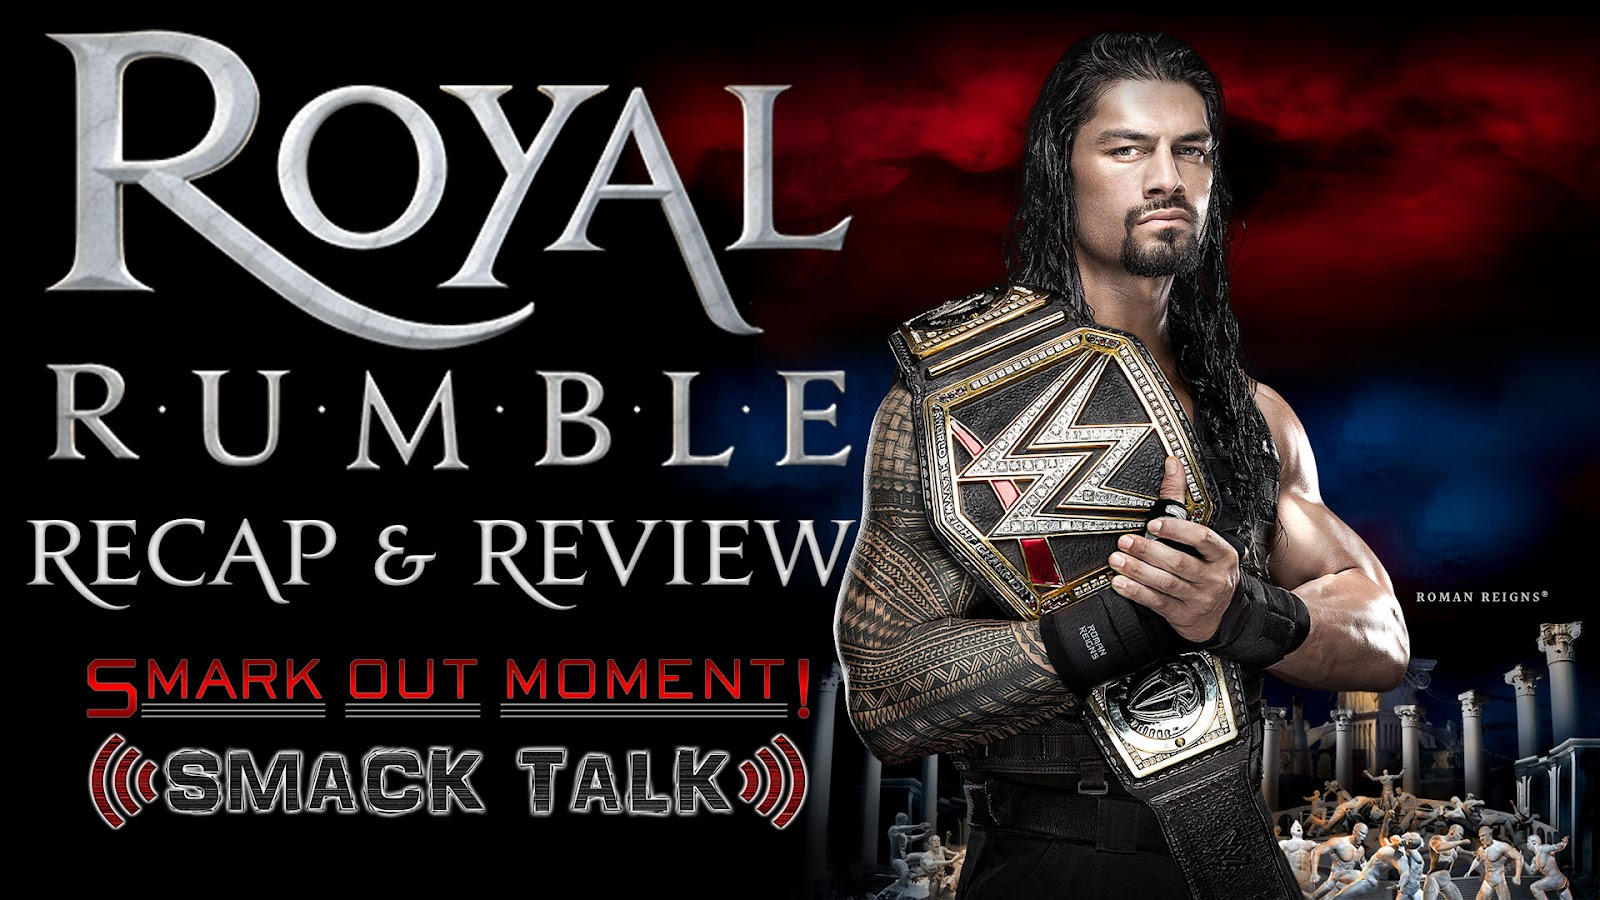 WWE Royal Rumble 2016 Recap and Review Podcast